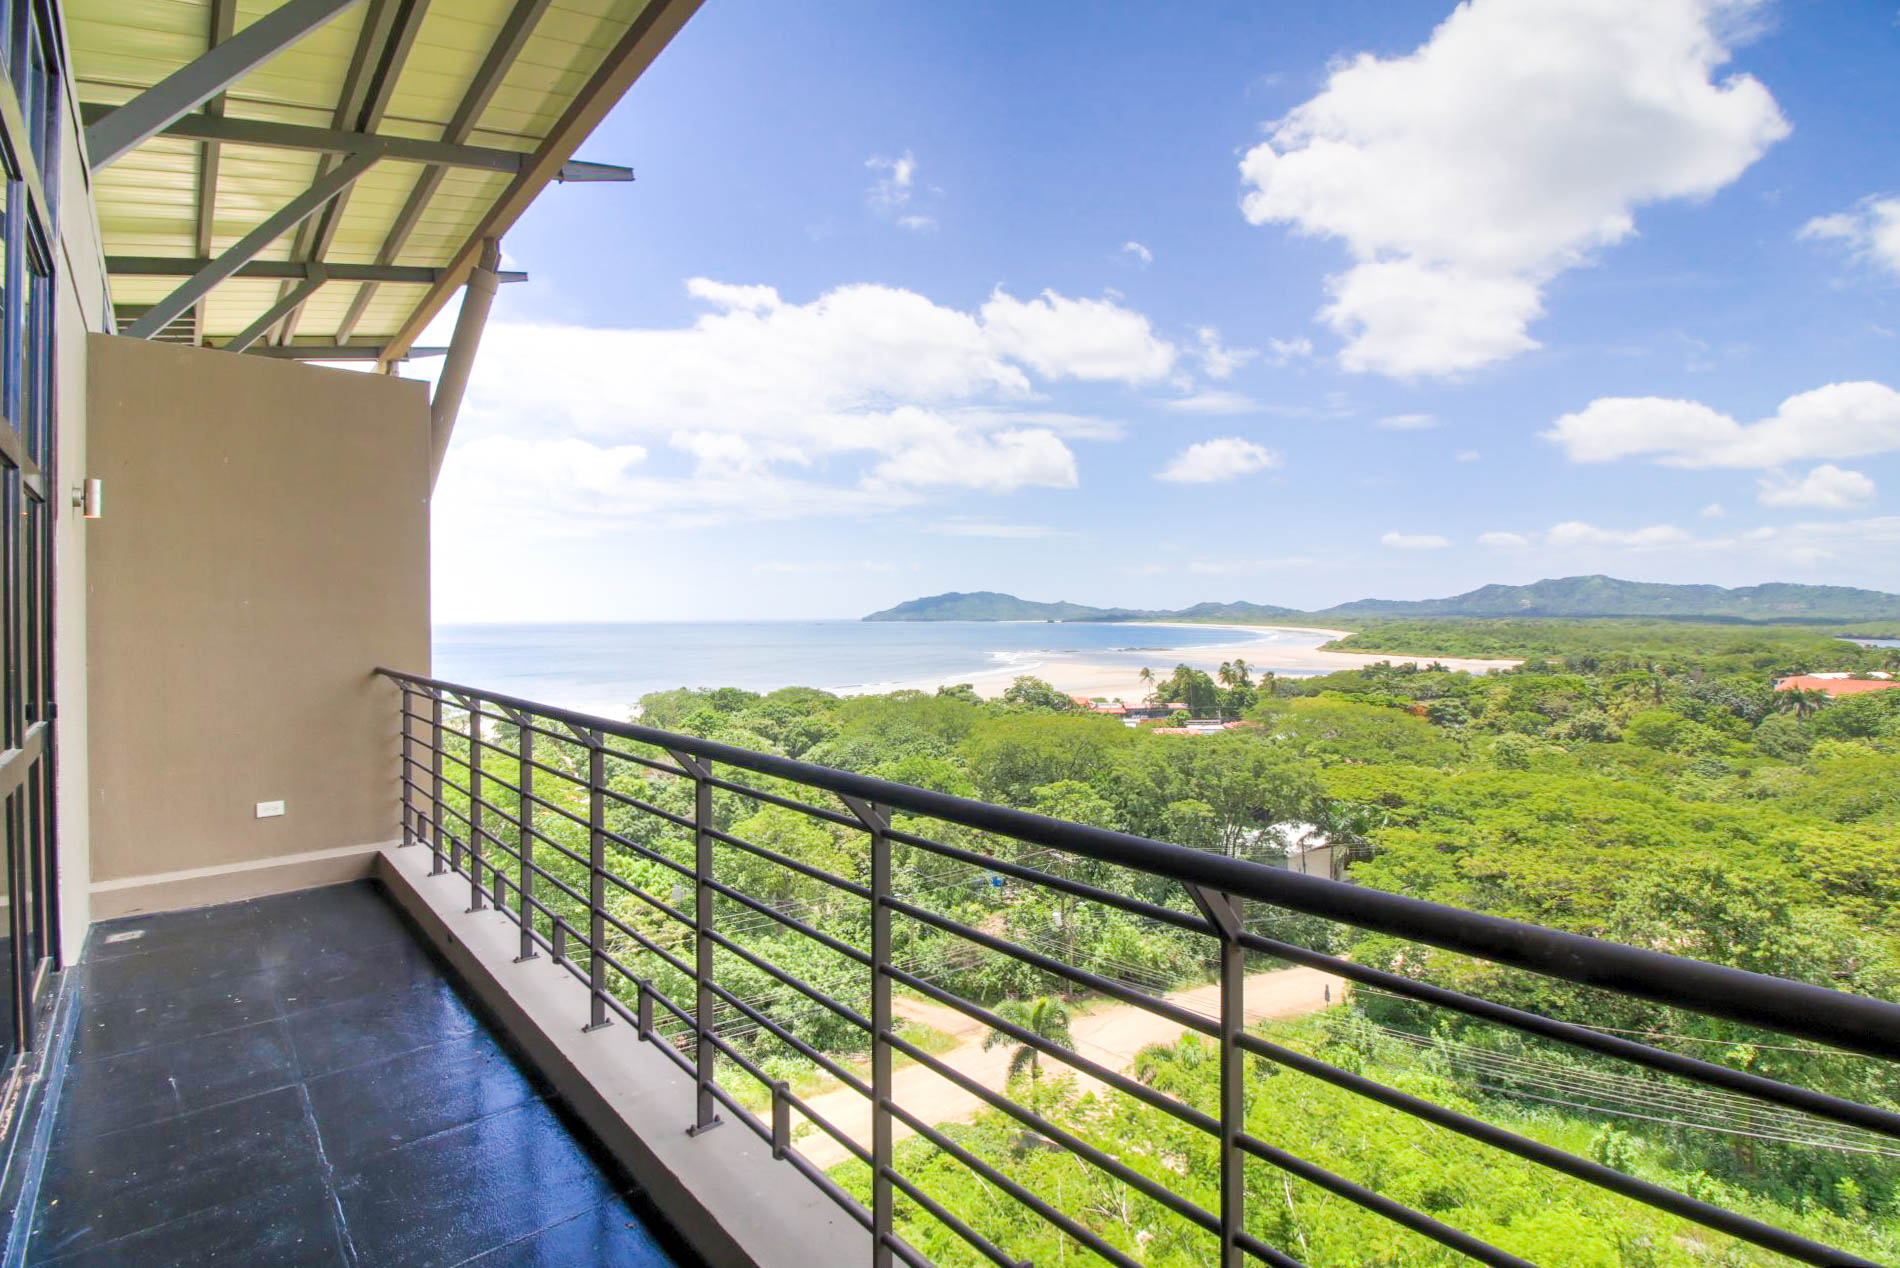 The ocean view you dream of from your vacation rental